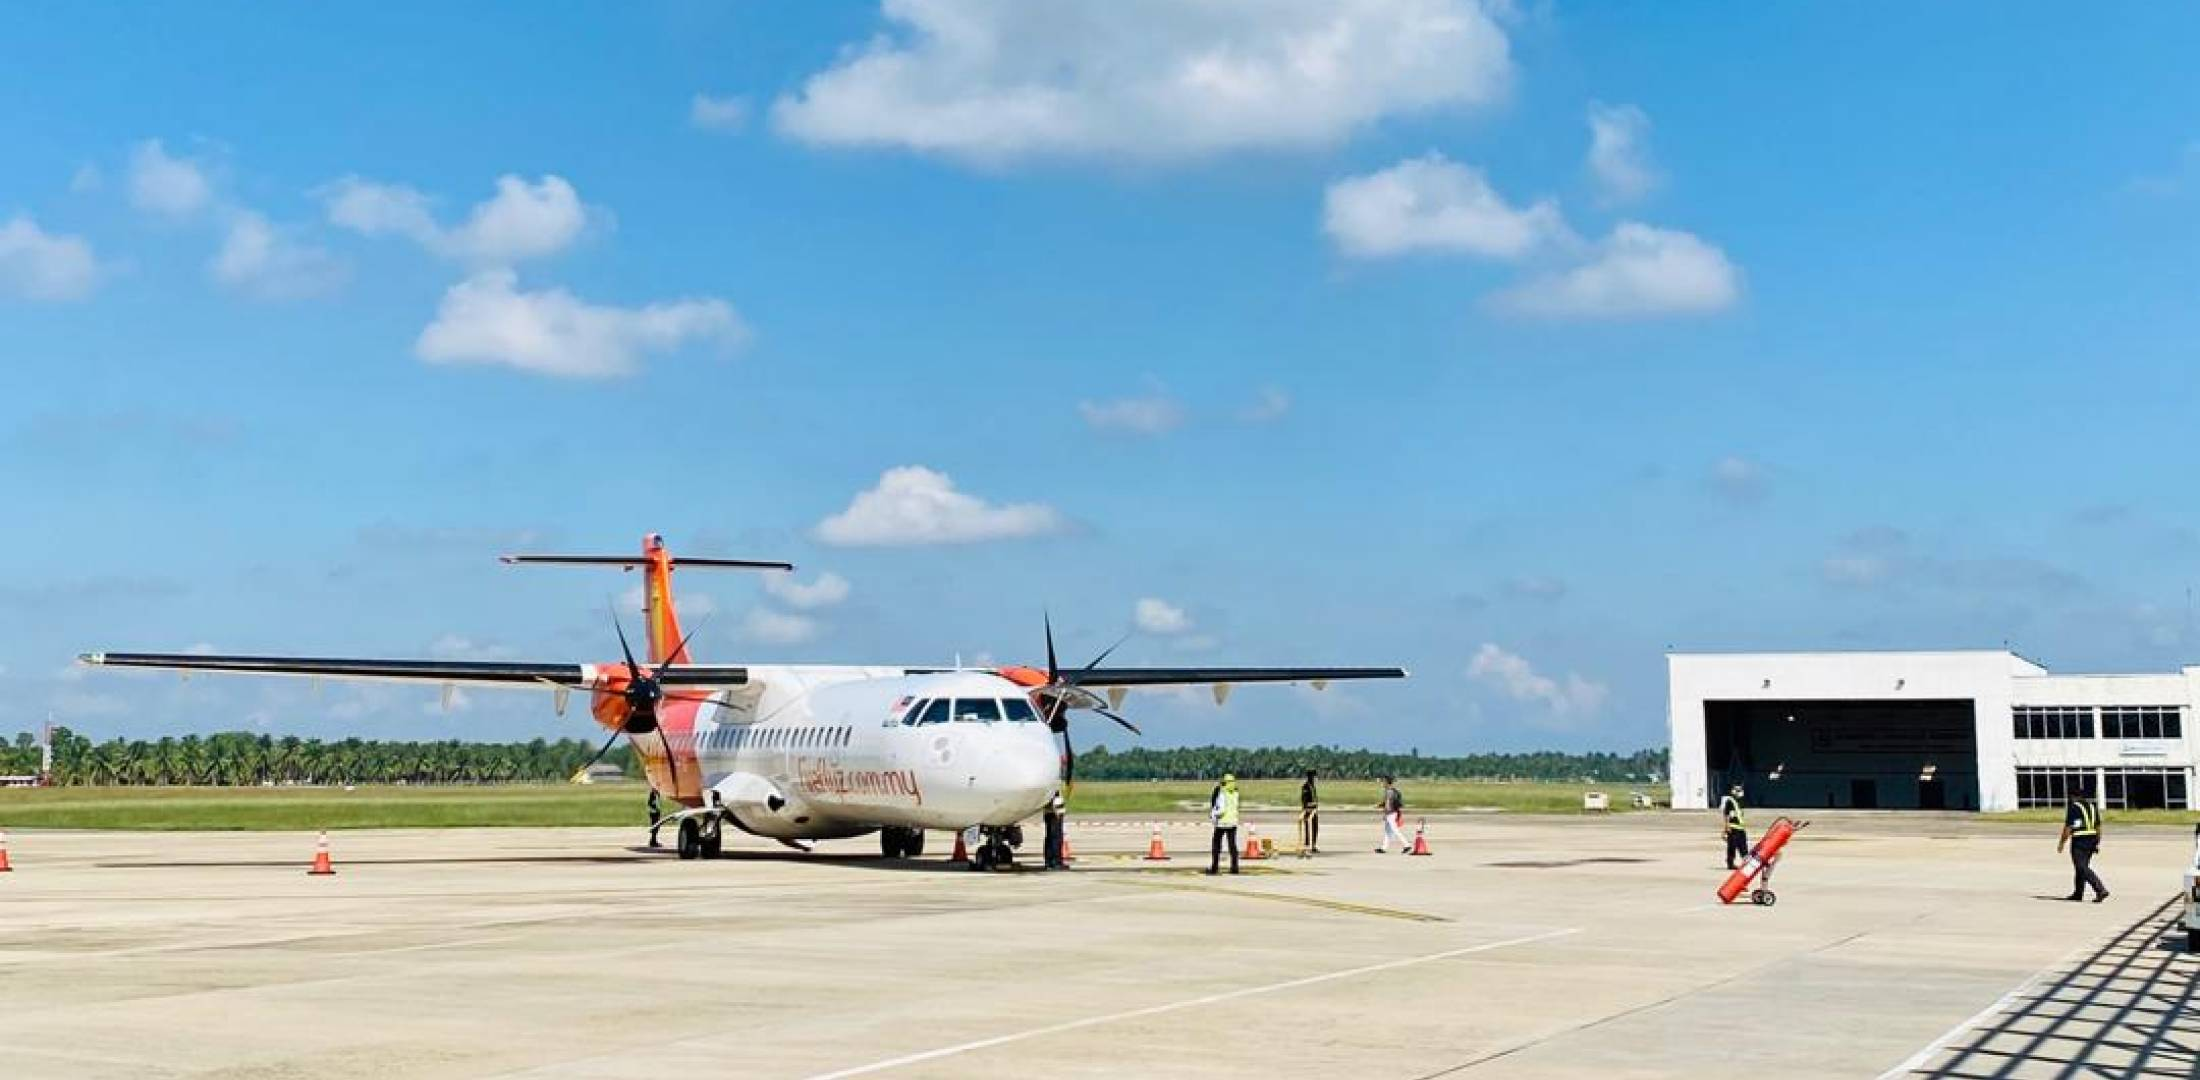 Firefly Airlines ATR 72